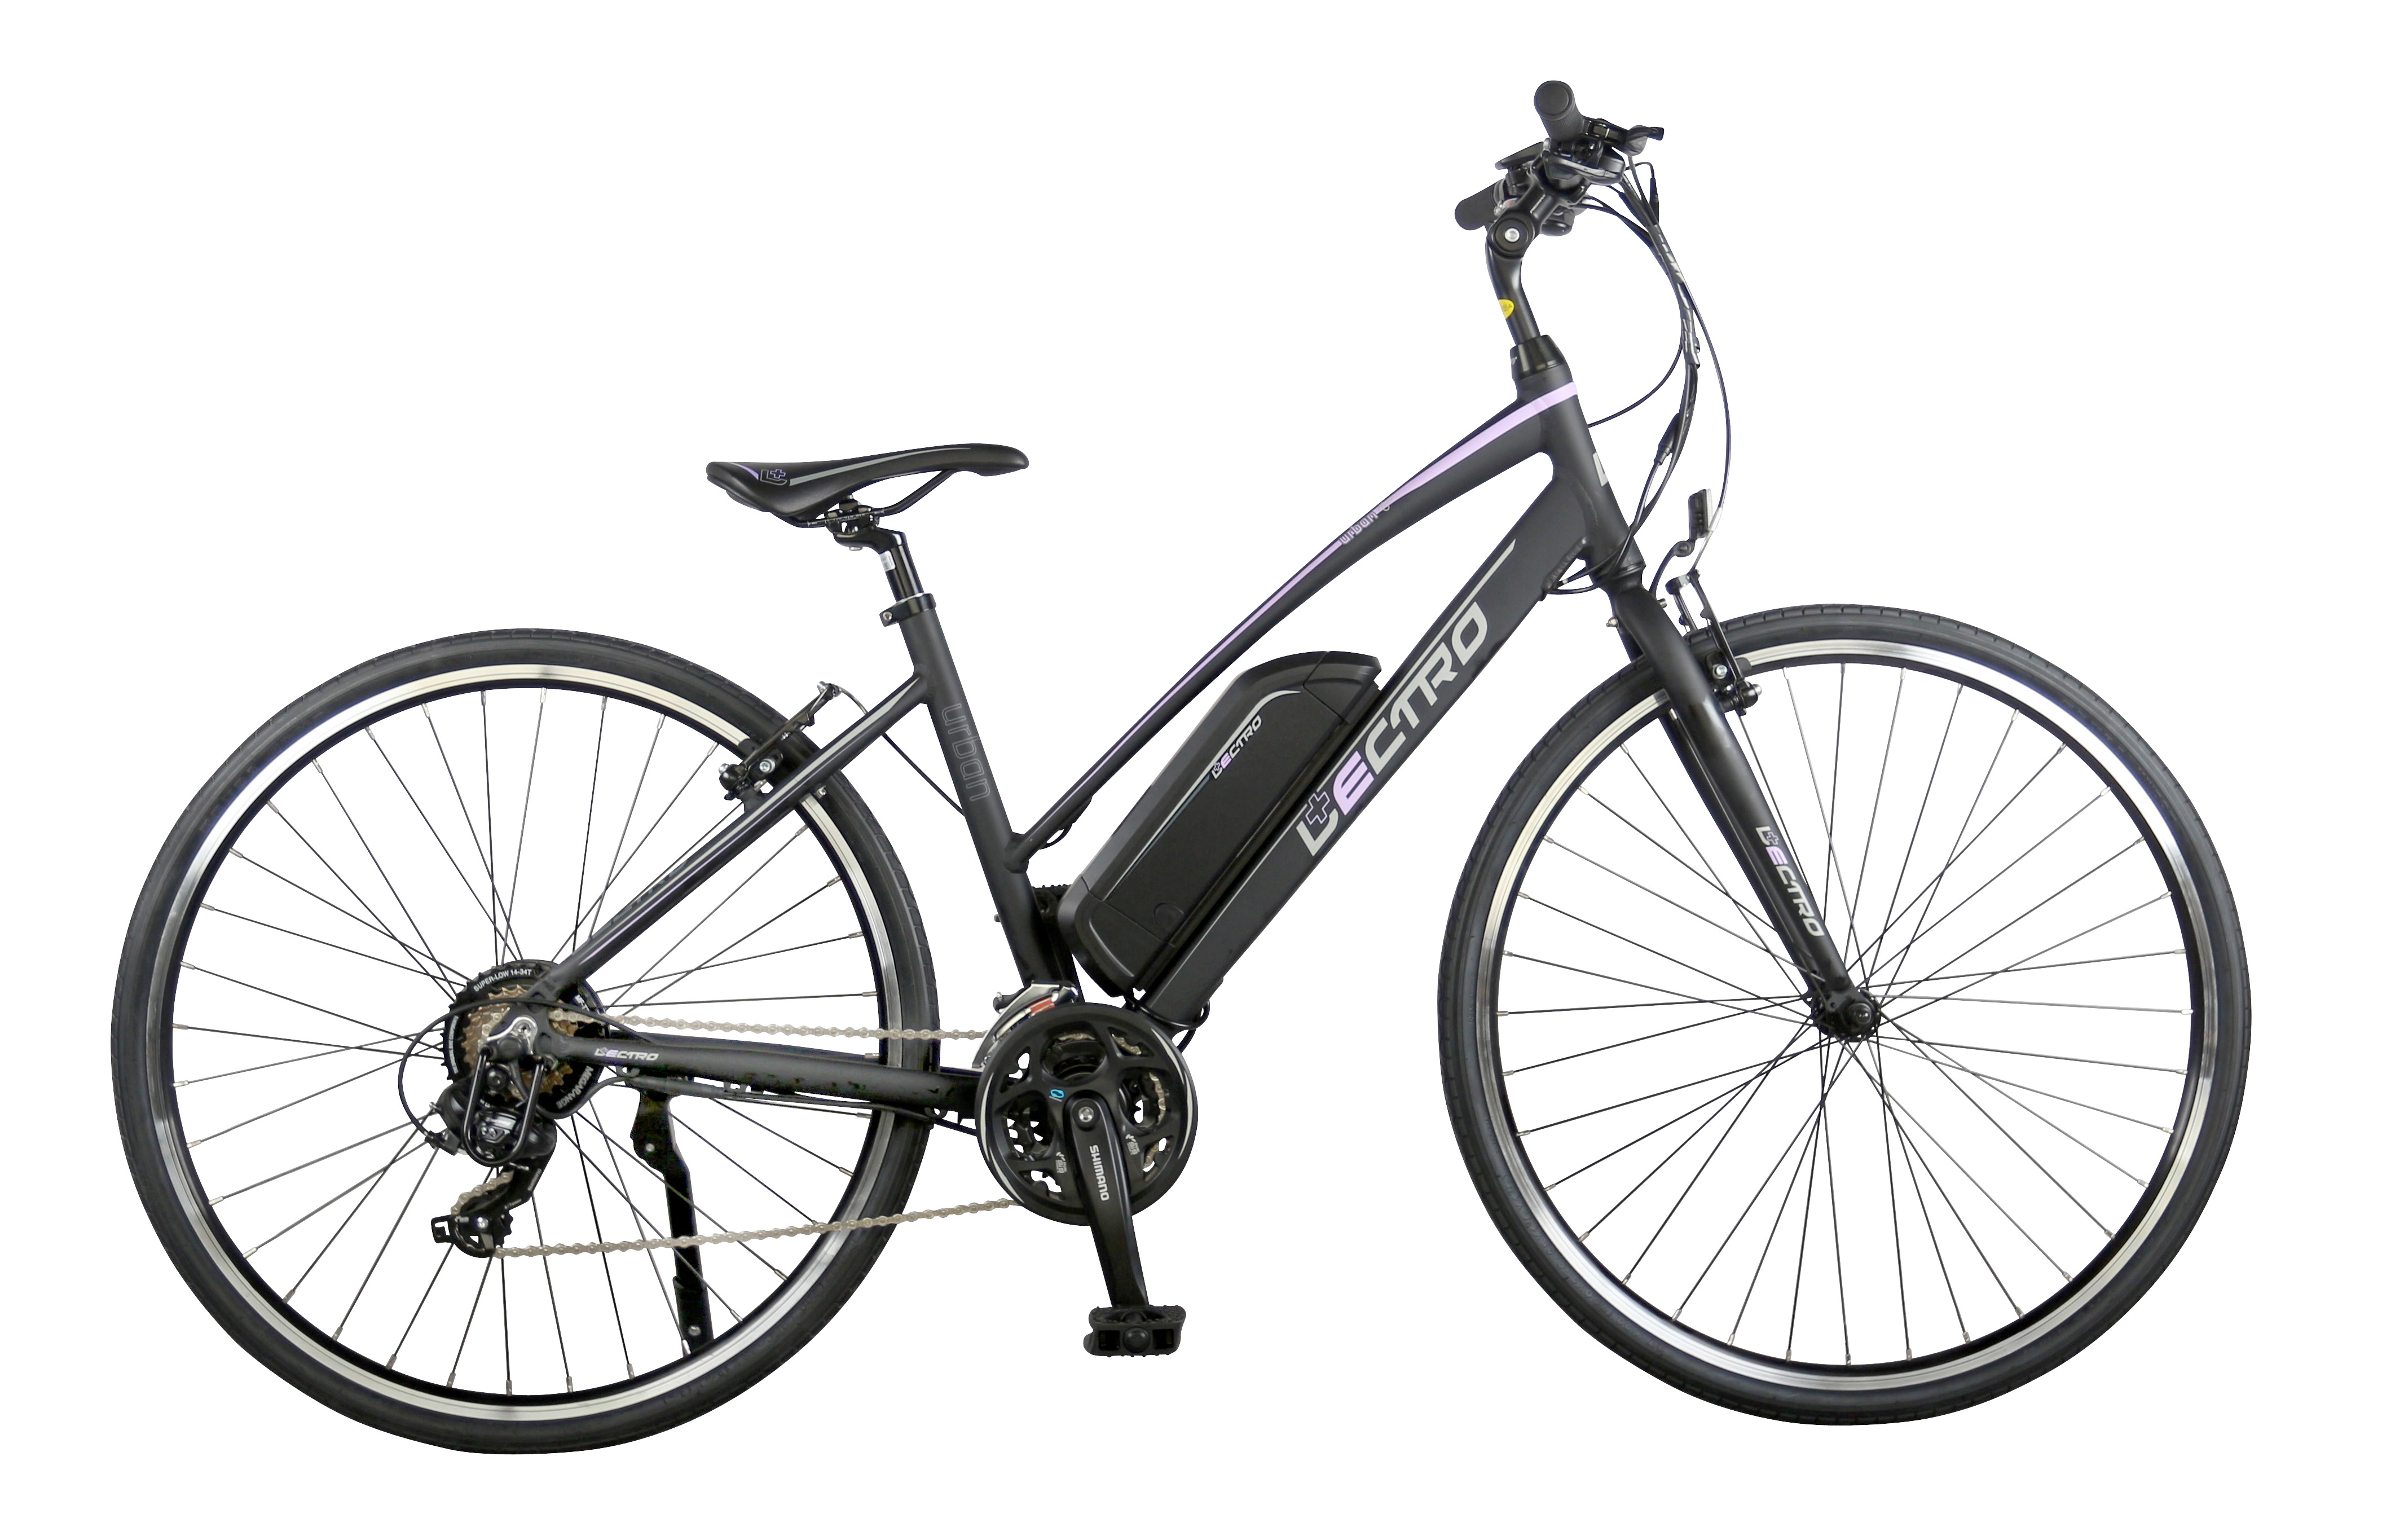 17 Urban Race 21 Speed 36v E Bike 700c Wheel La S